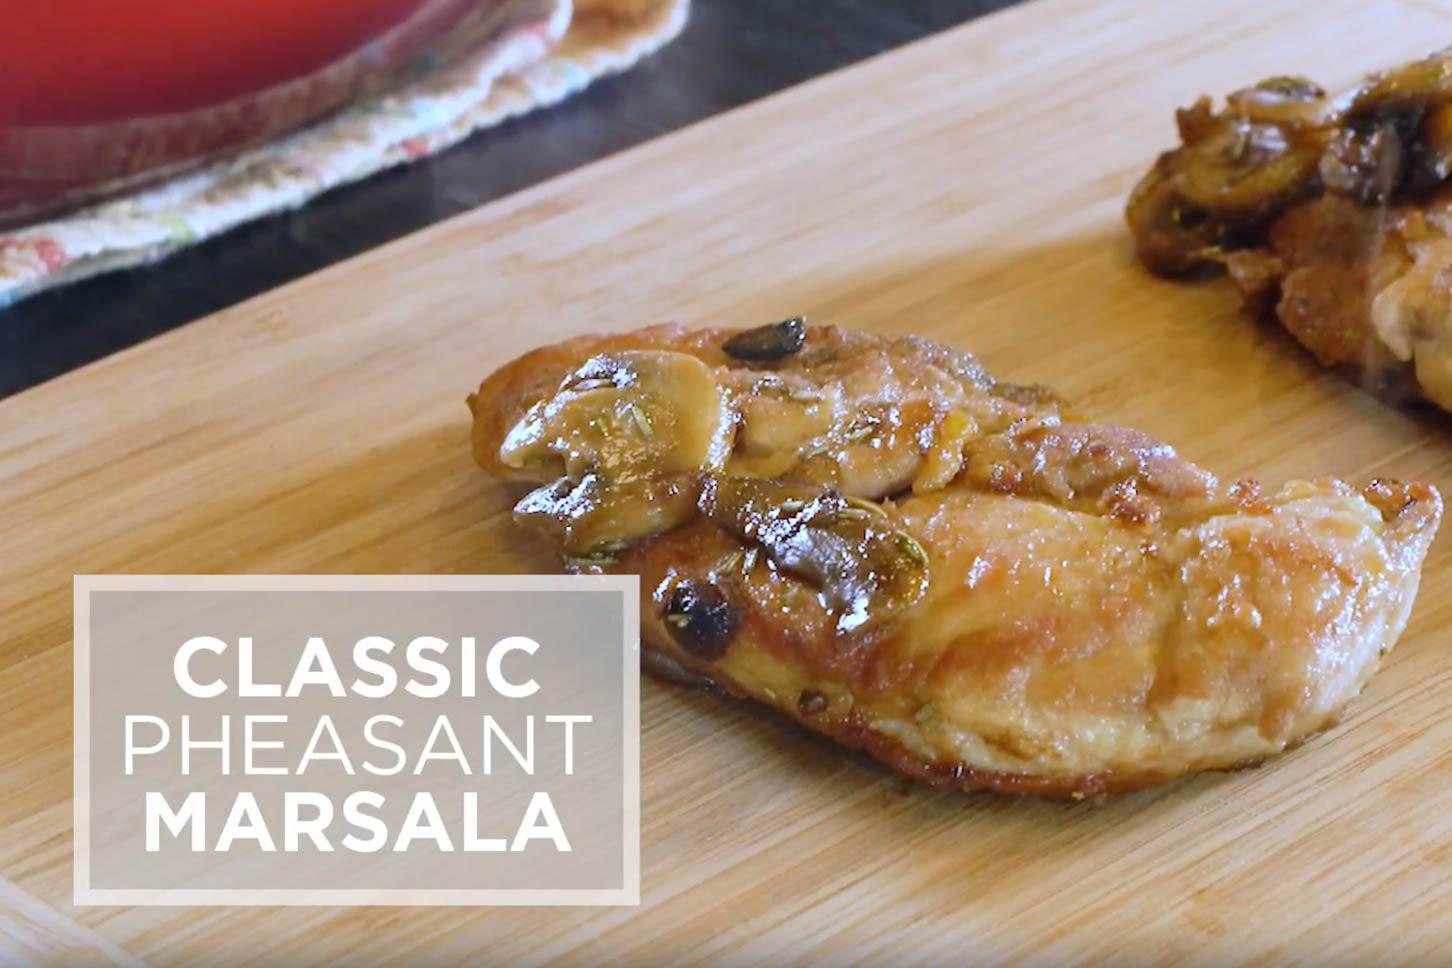 Pheasant marsala video